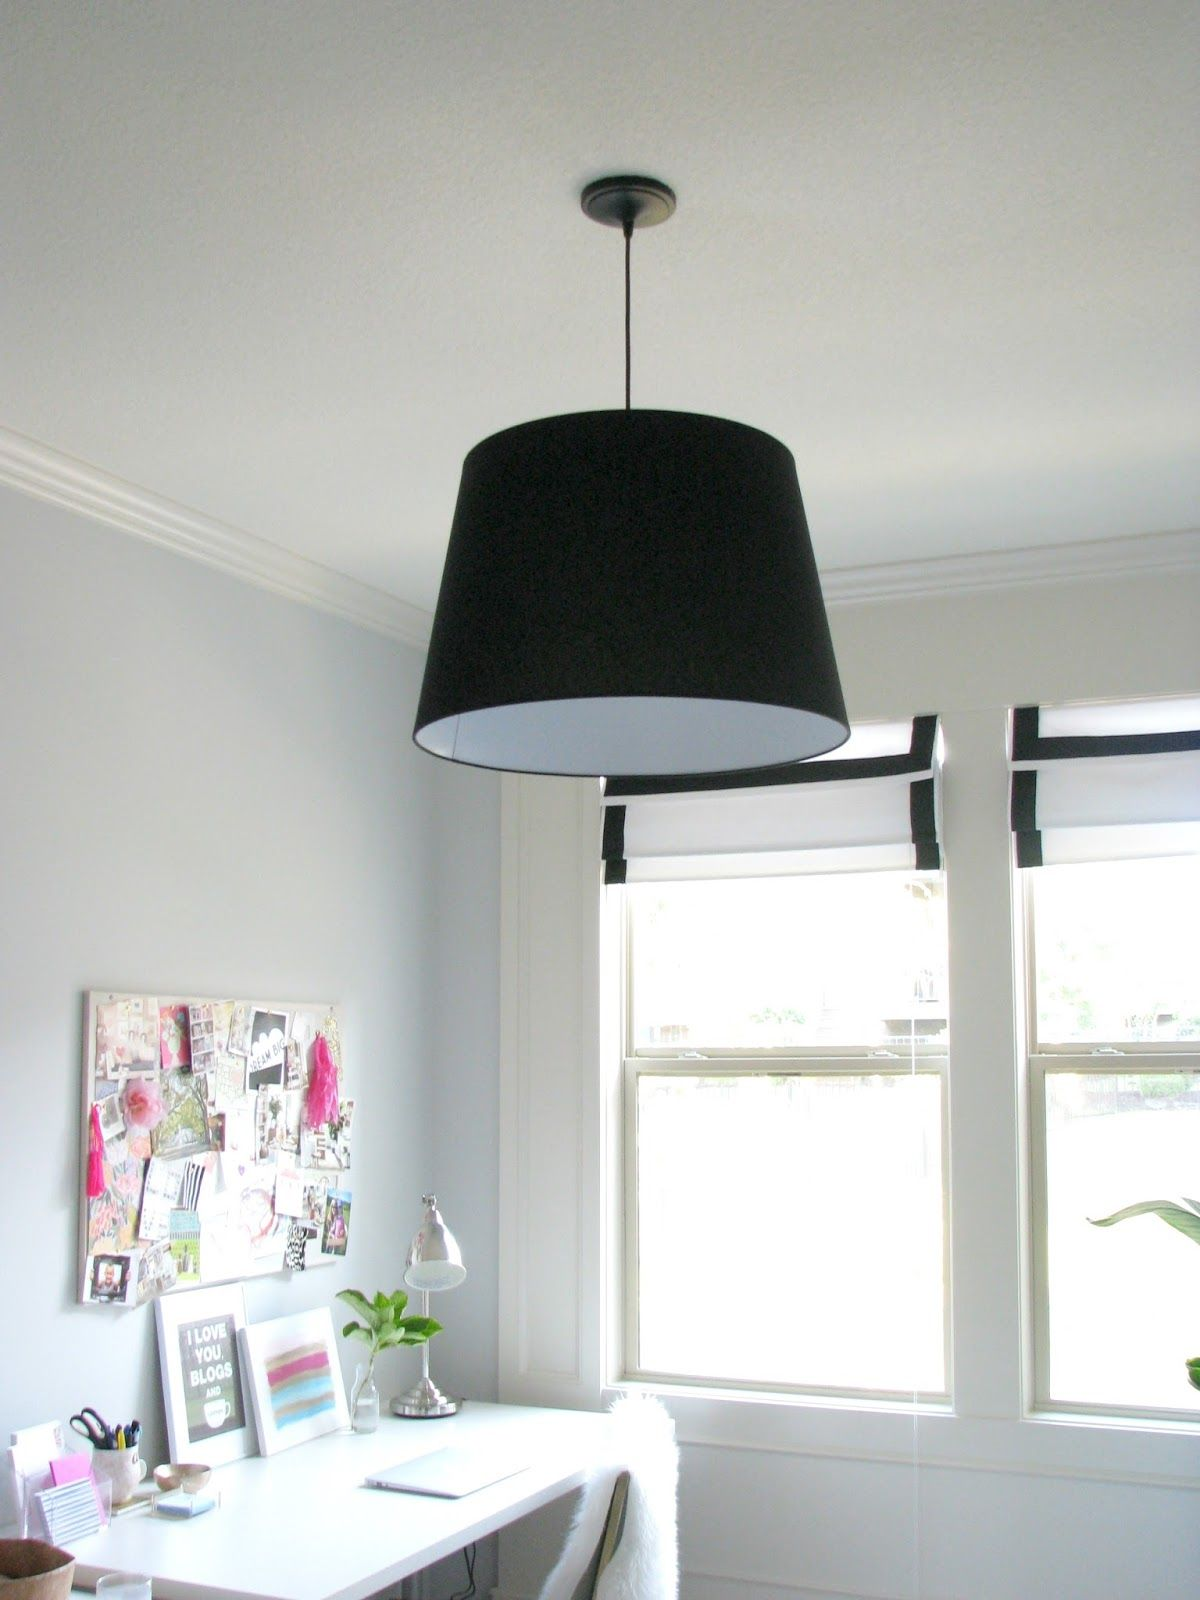 Black JARA Shade from Ikea pendant light kit from Lowes